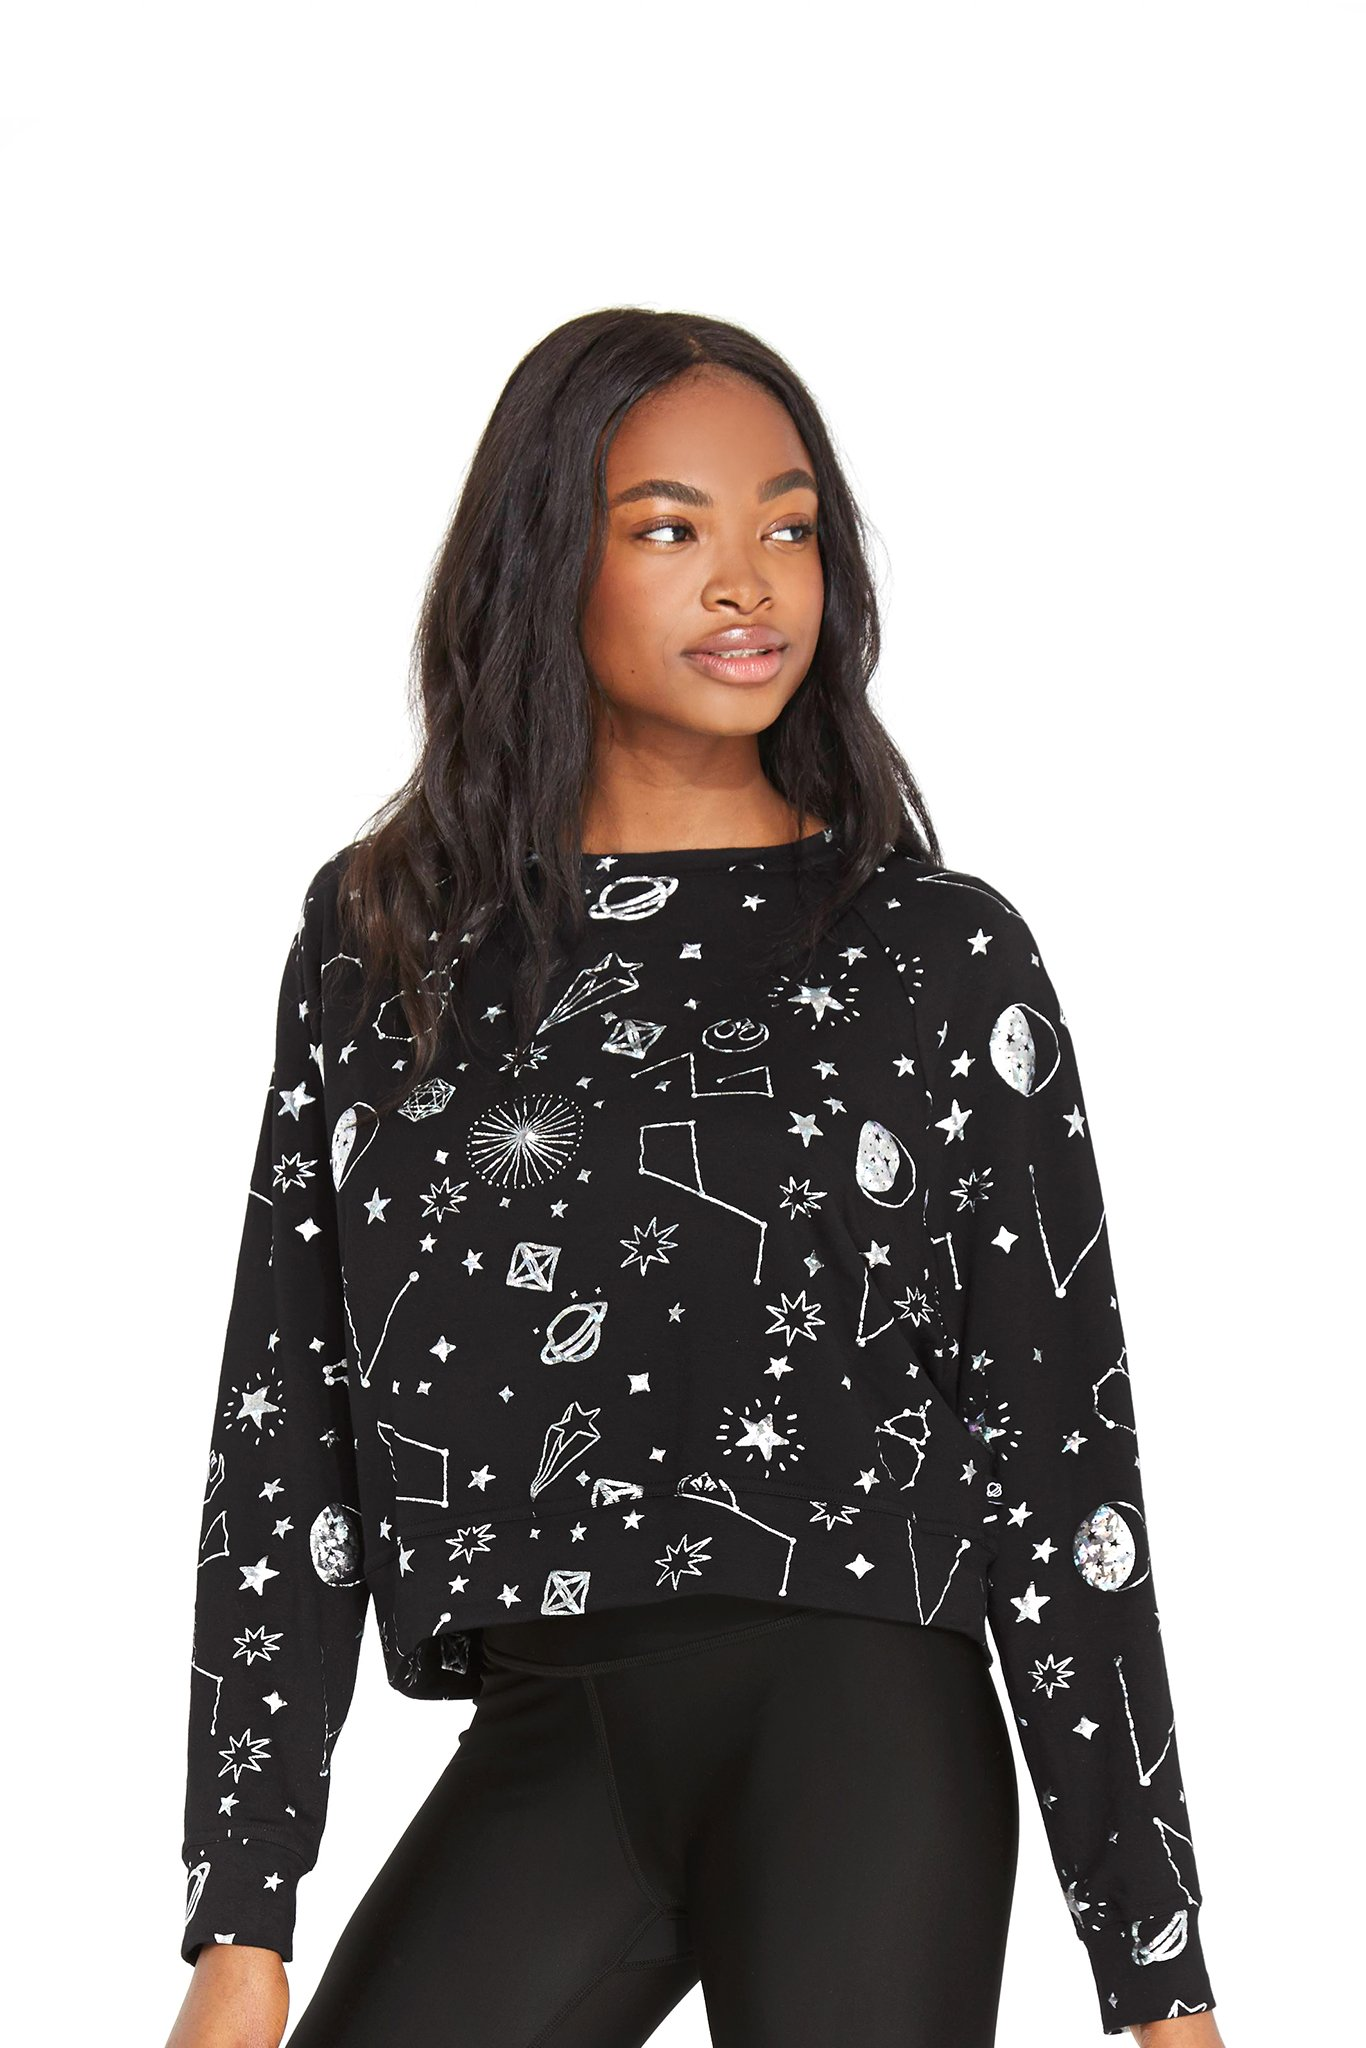 Women's Terez x Star Wars Rebel Galaxy Hologram Foil Crewneck